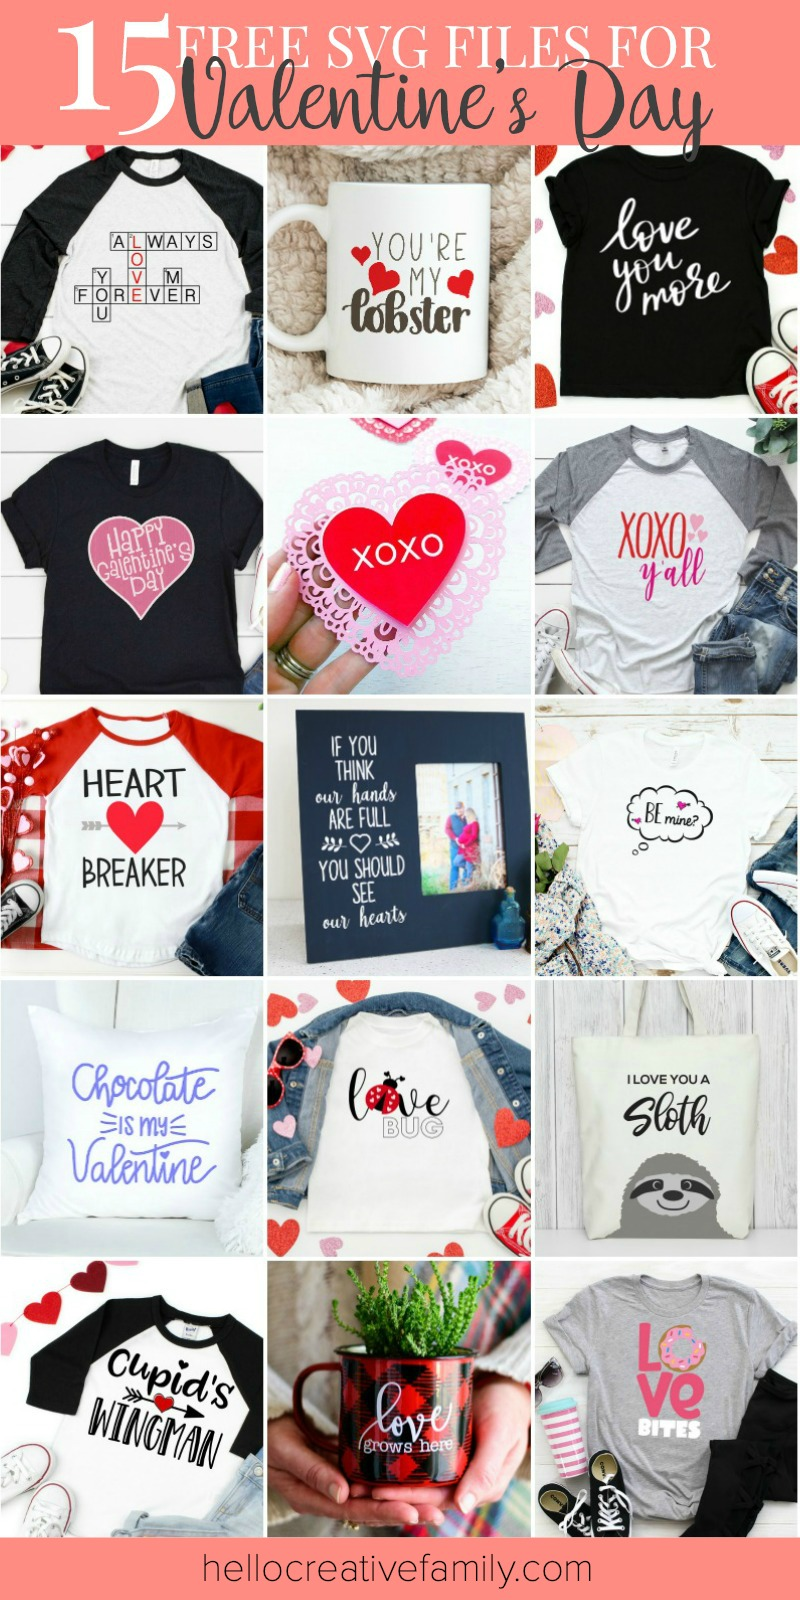 "Pull out your Cricut or SIlhouette and start whipping up Valentine's Day handmade gifts and crafts! We are sharing 15 free Valentine's Day SVG Files including our own ""Be Mine"" cut file! Make an easy handmade gift or decorate for the holiday of love with a fun cutting machine project! #Valentine #ValentinesDay #Cricut #Silhouette #CricutProject #FreeSVG"